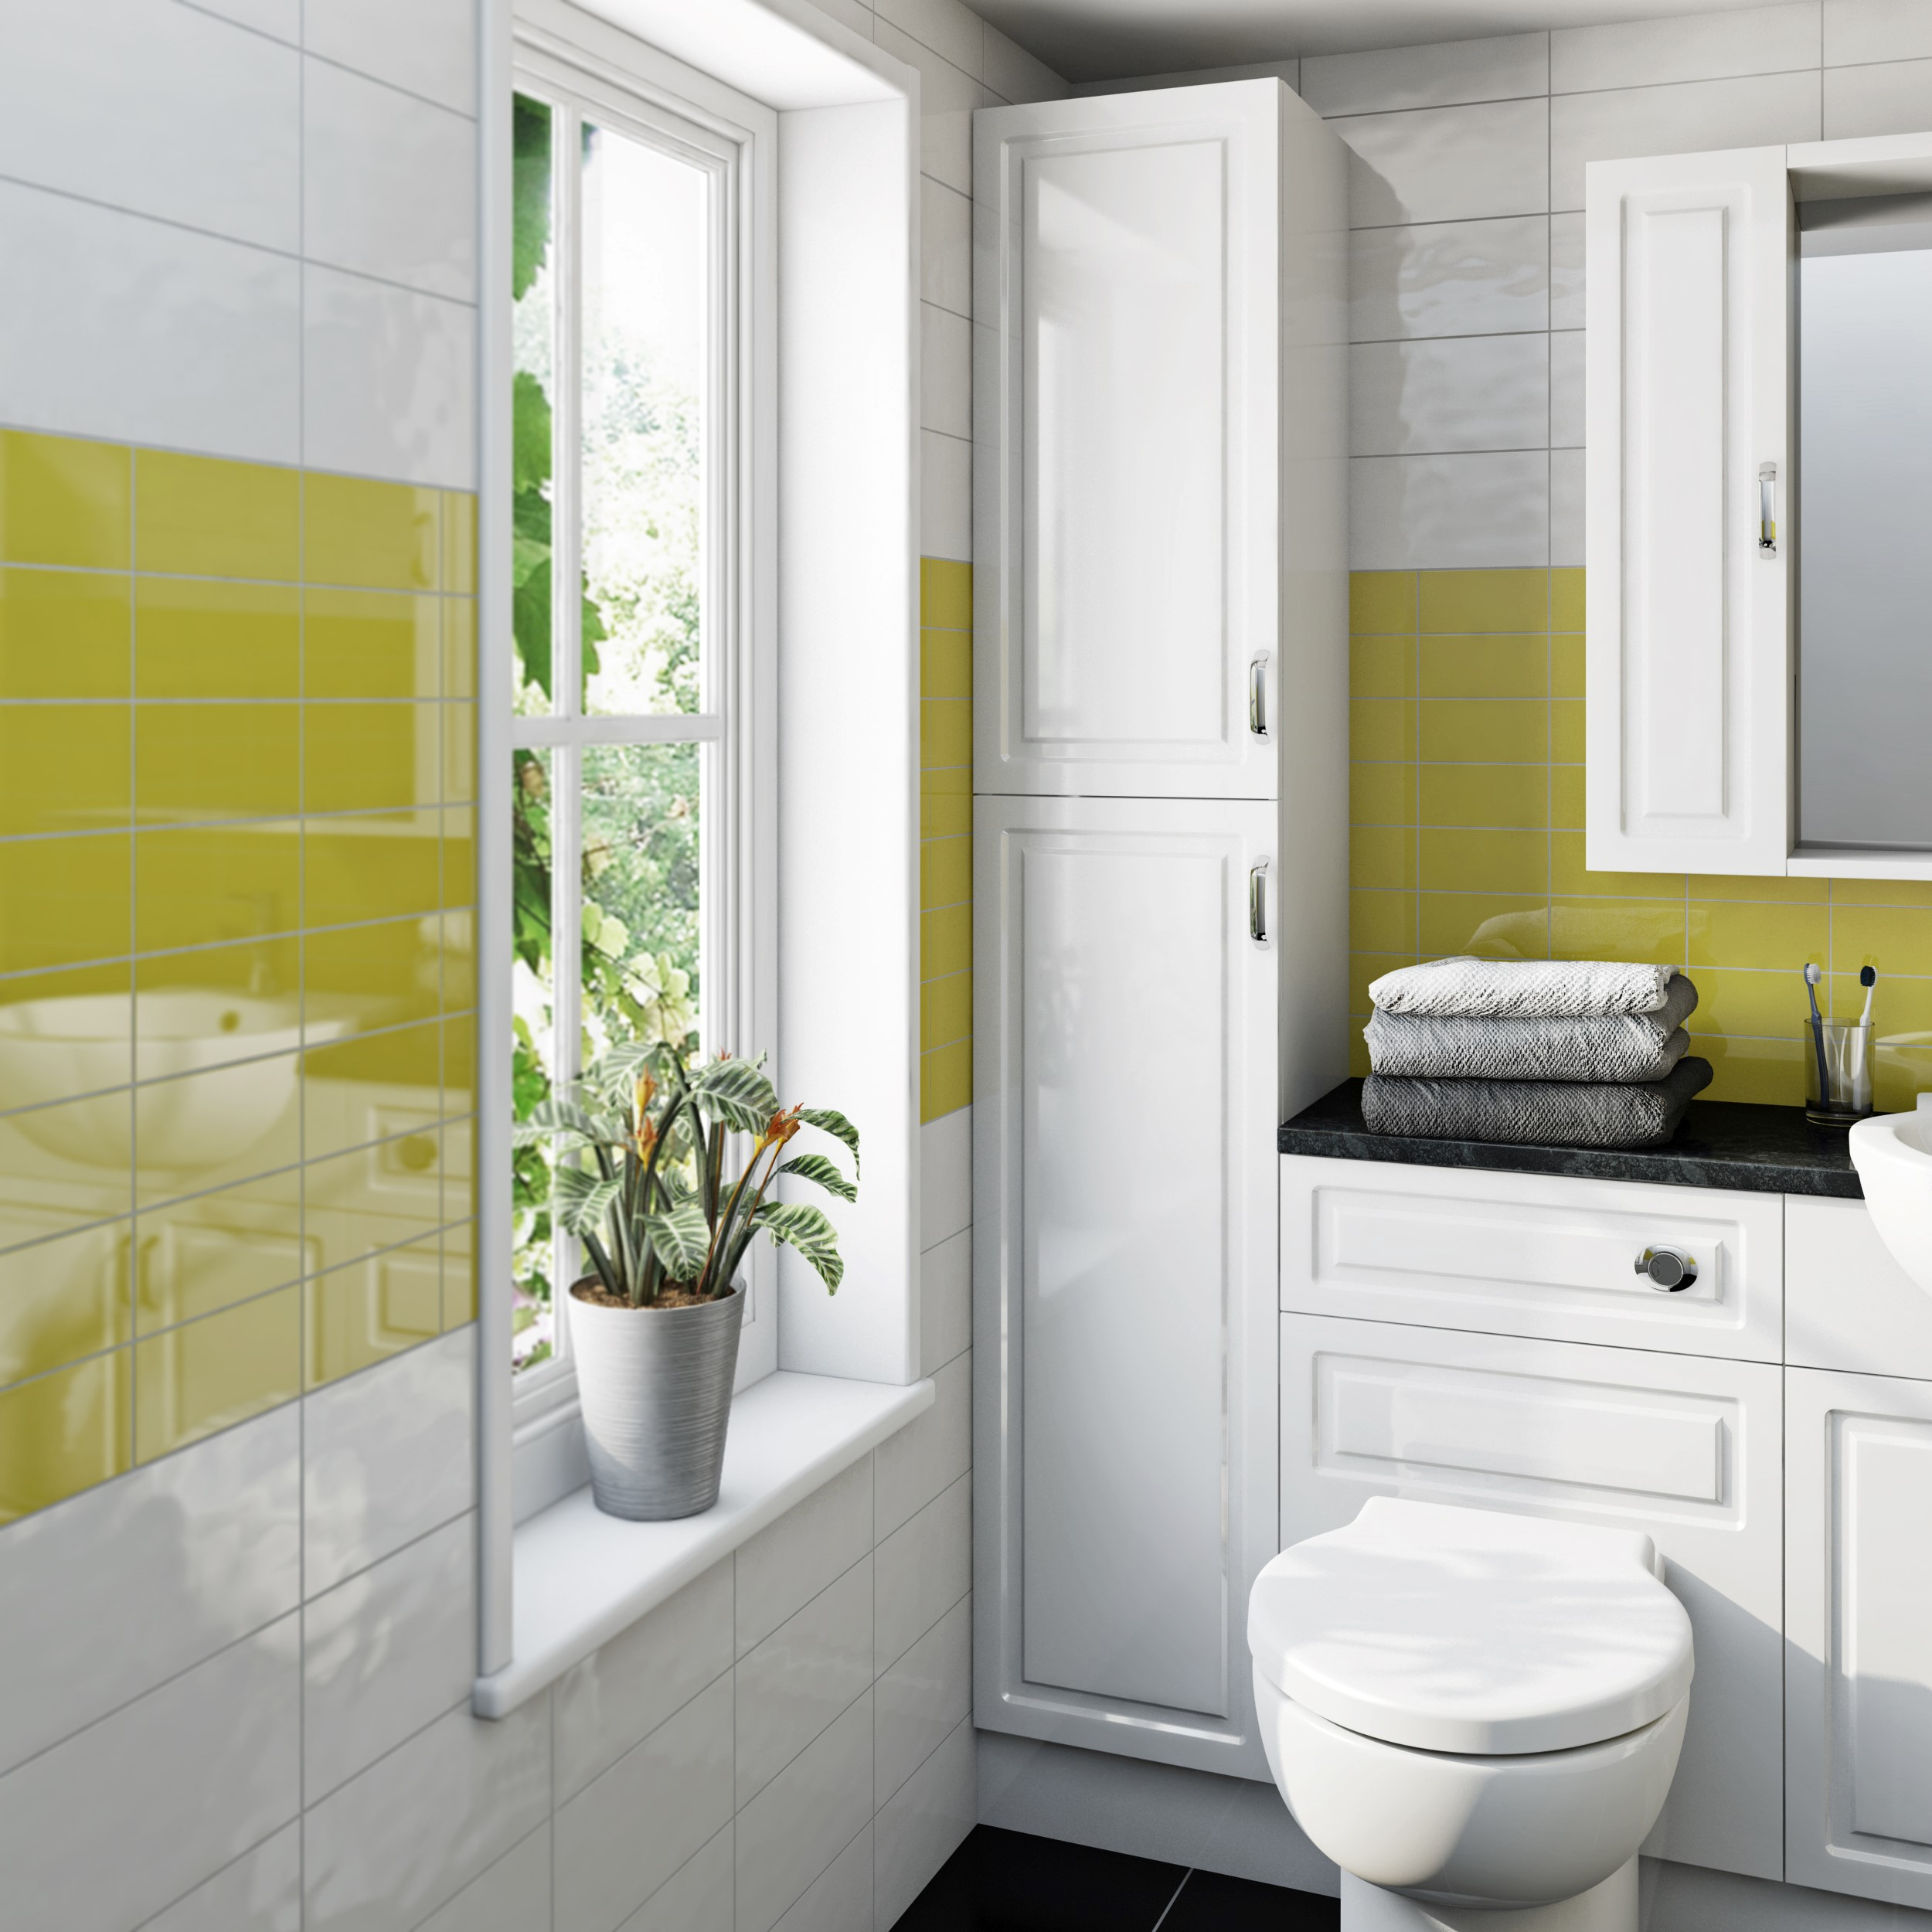 Glass canary tile